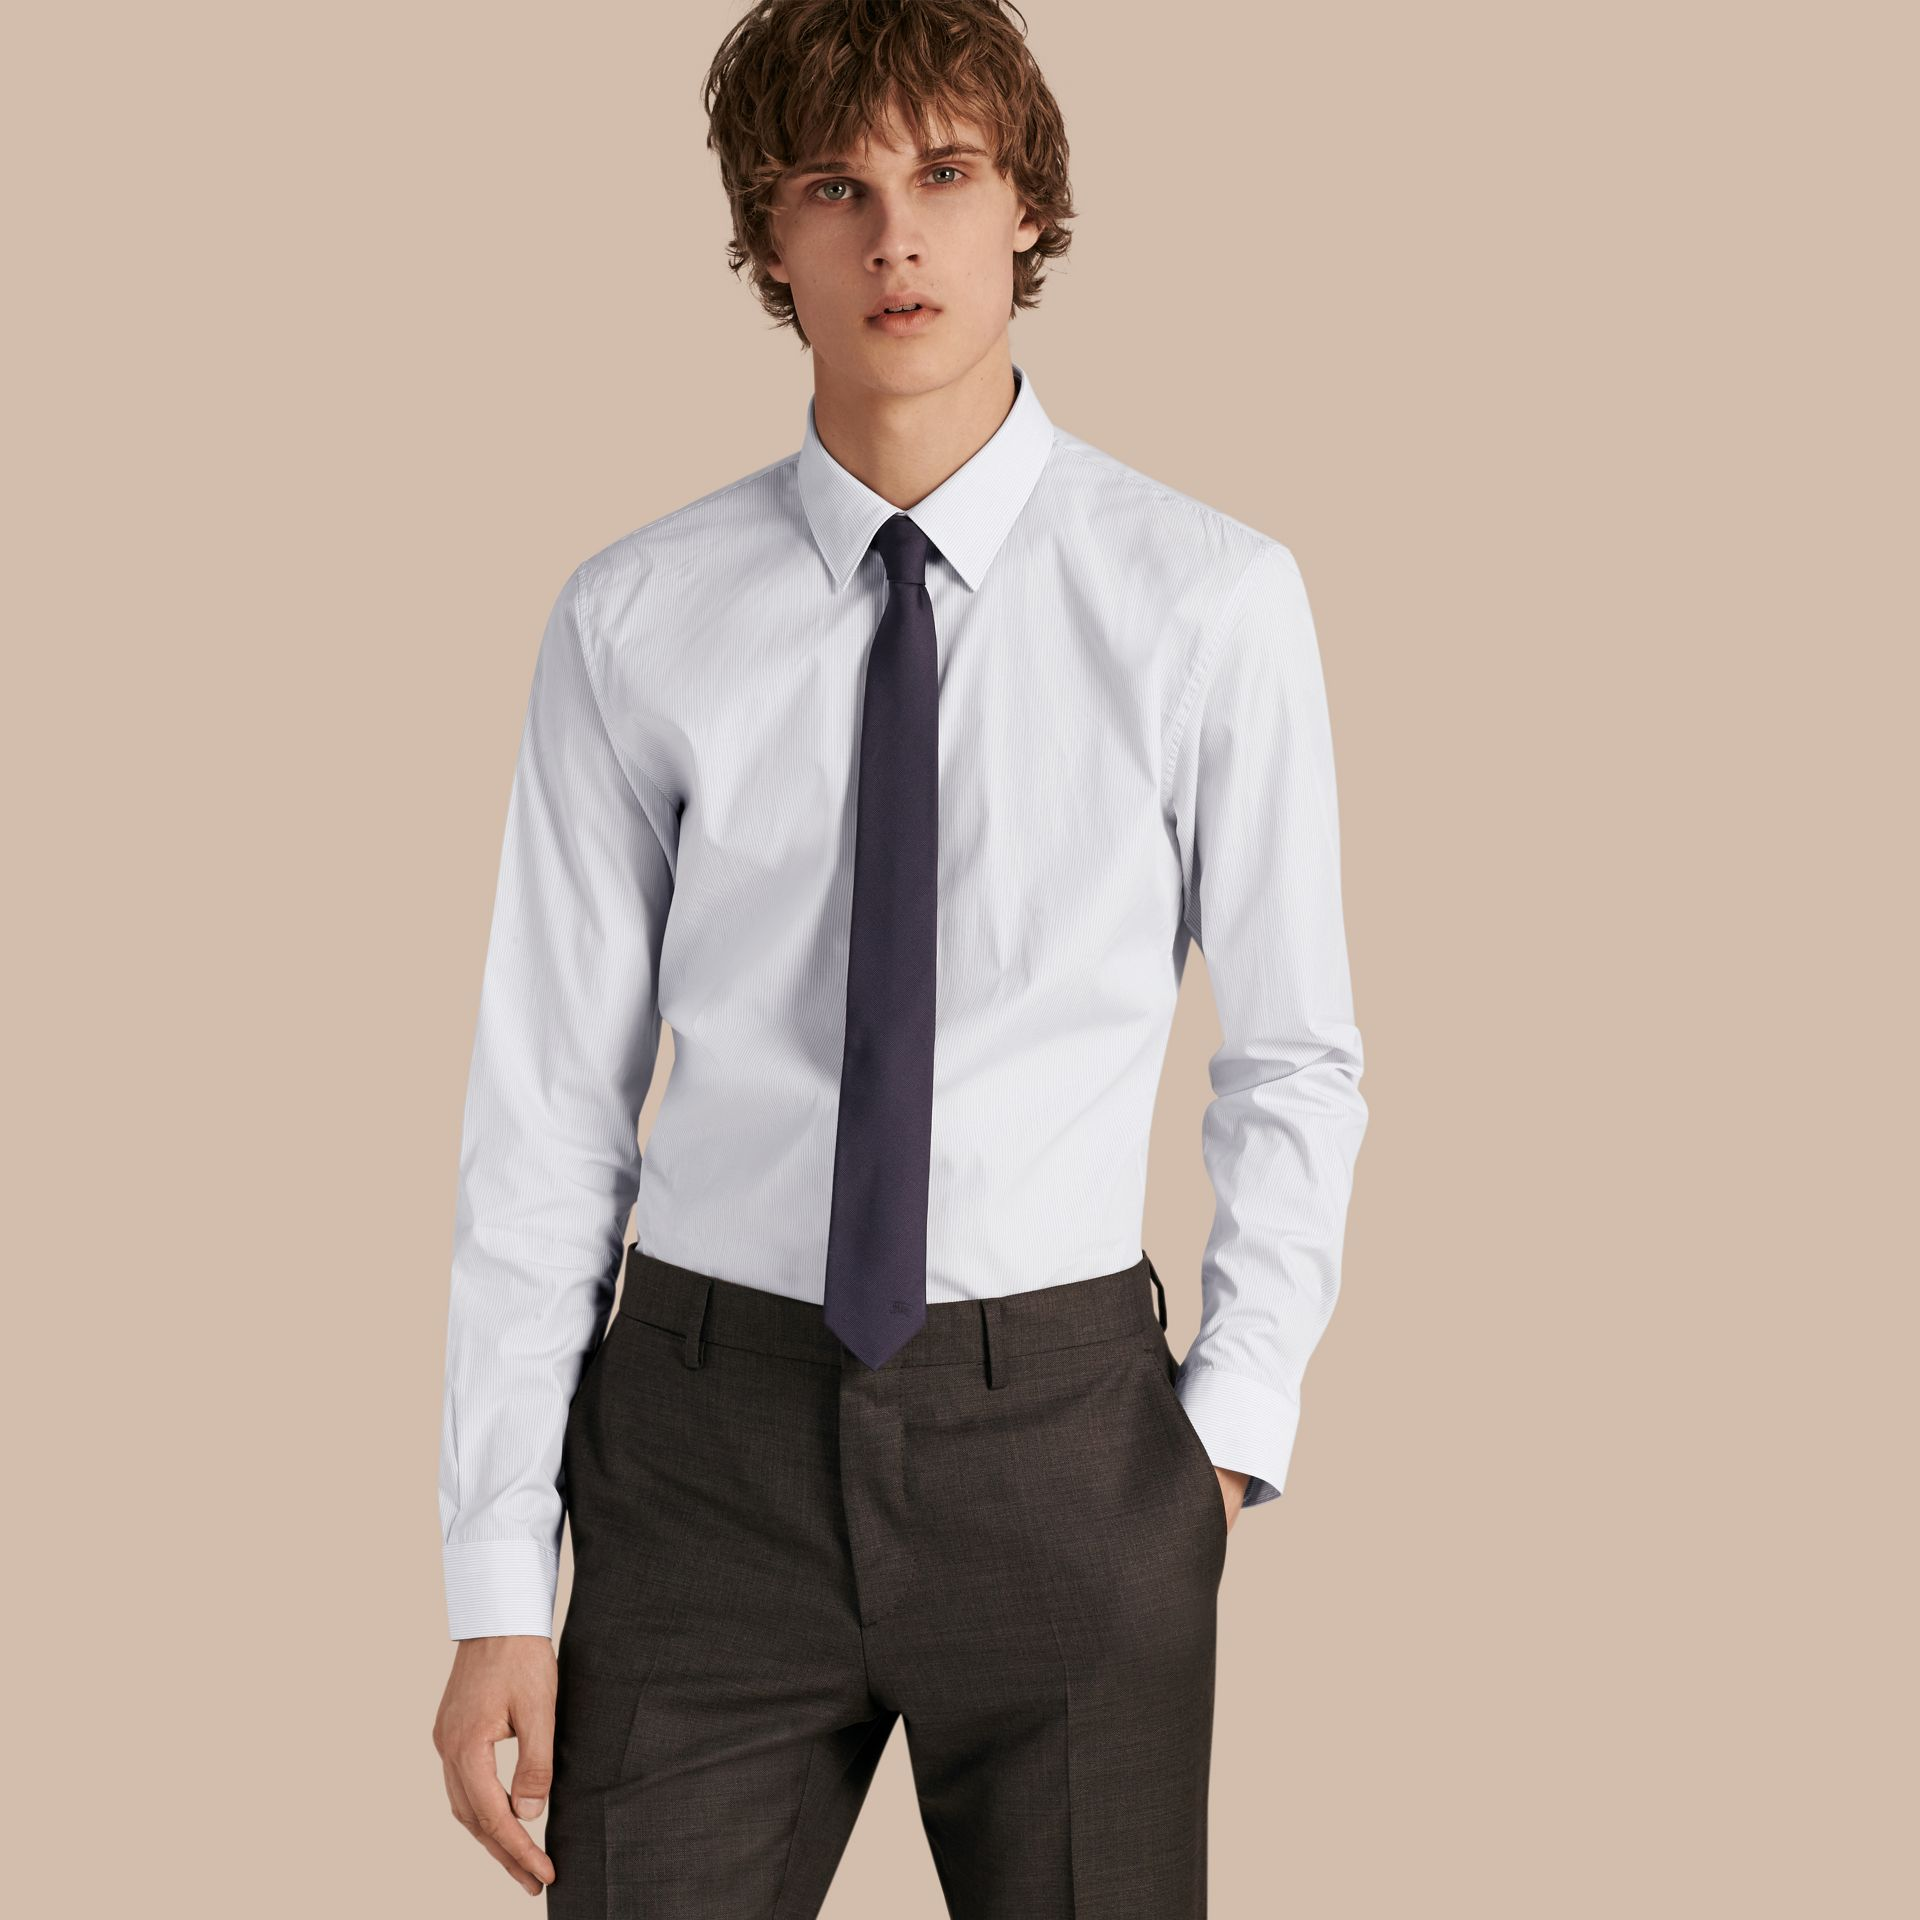 City grey Slim Fit Striped Cotton Poplin Shirt City Grey - gallery image 1